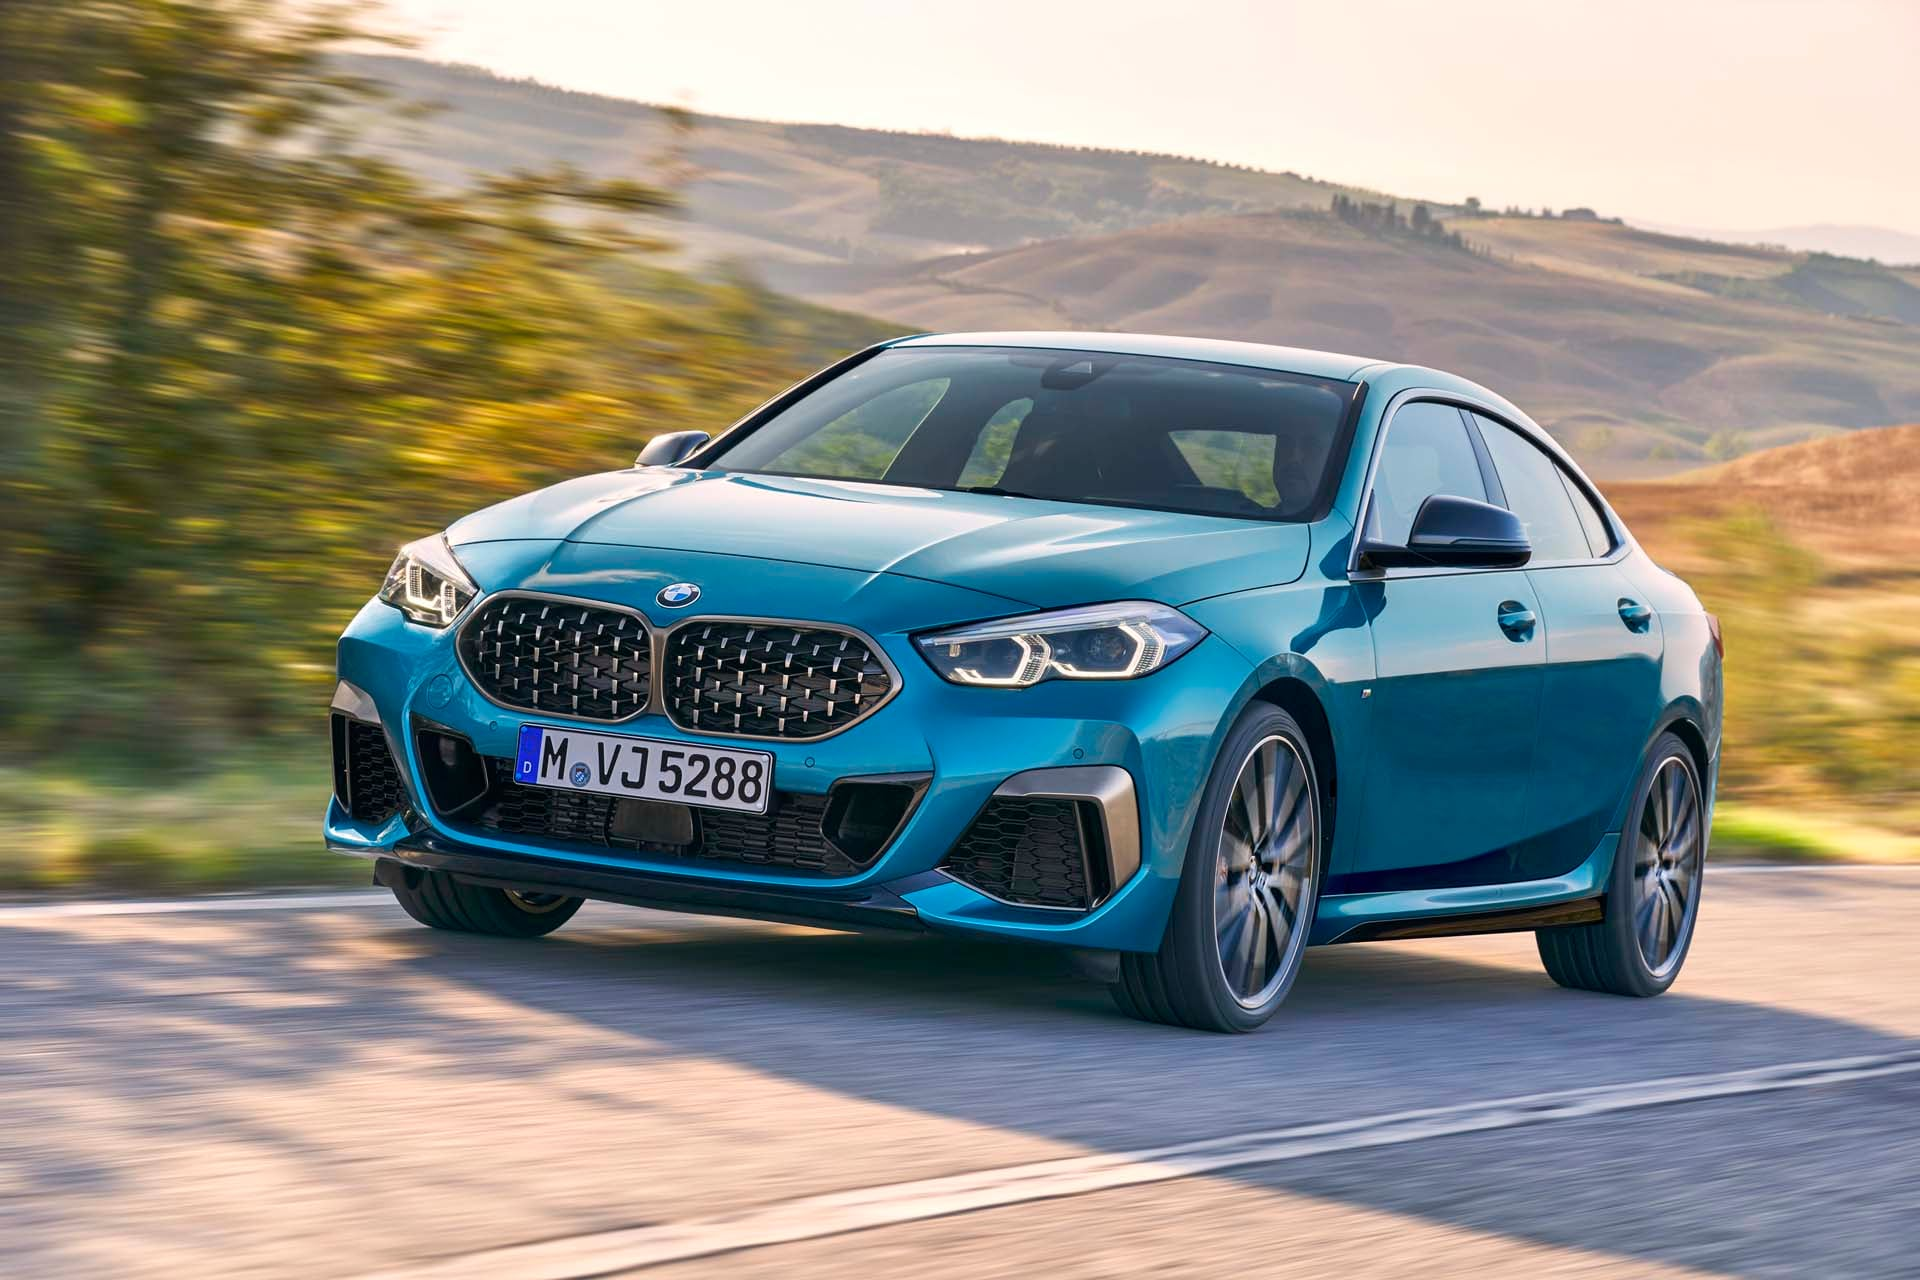 See the body of the 2020 BMW M235i xDrive Gran Coupe